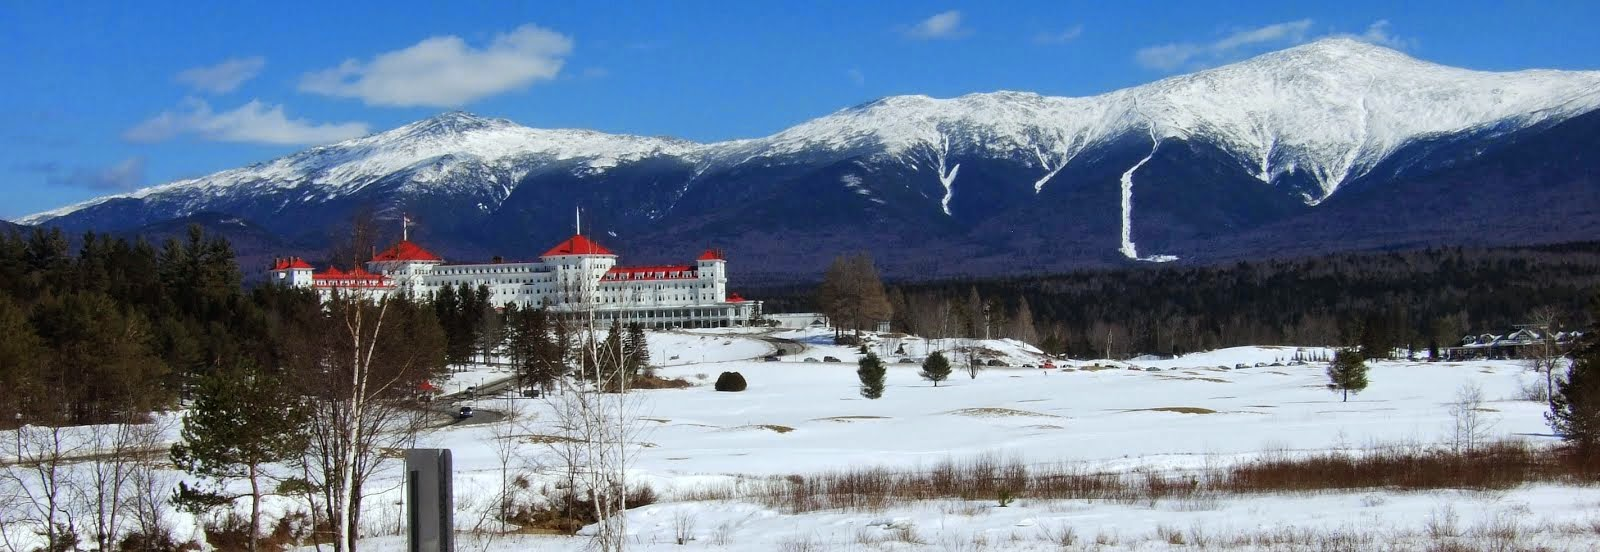 The Mt. Washington Hotel